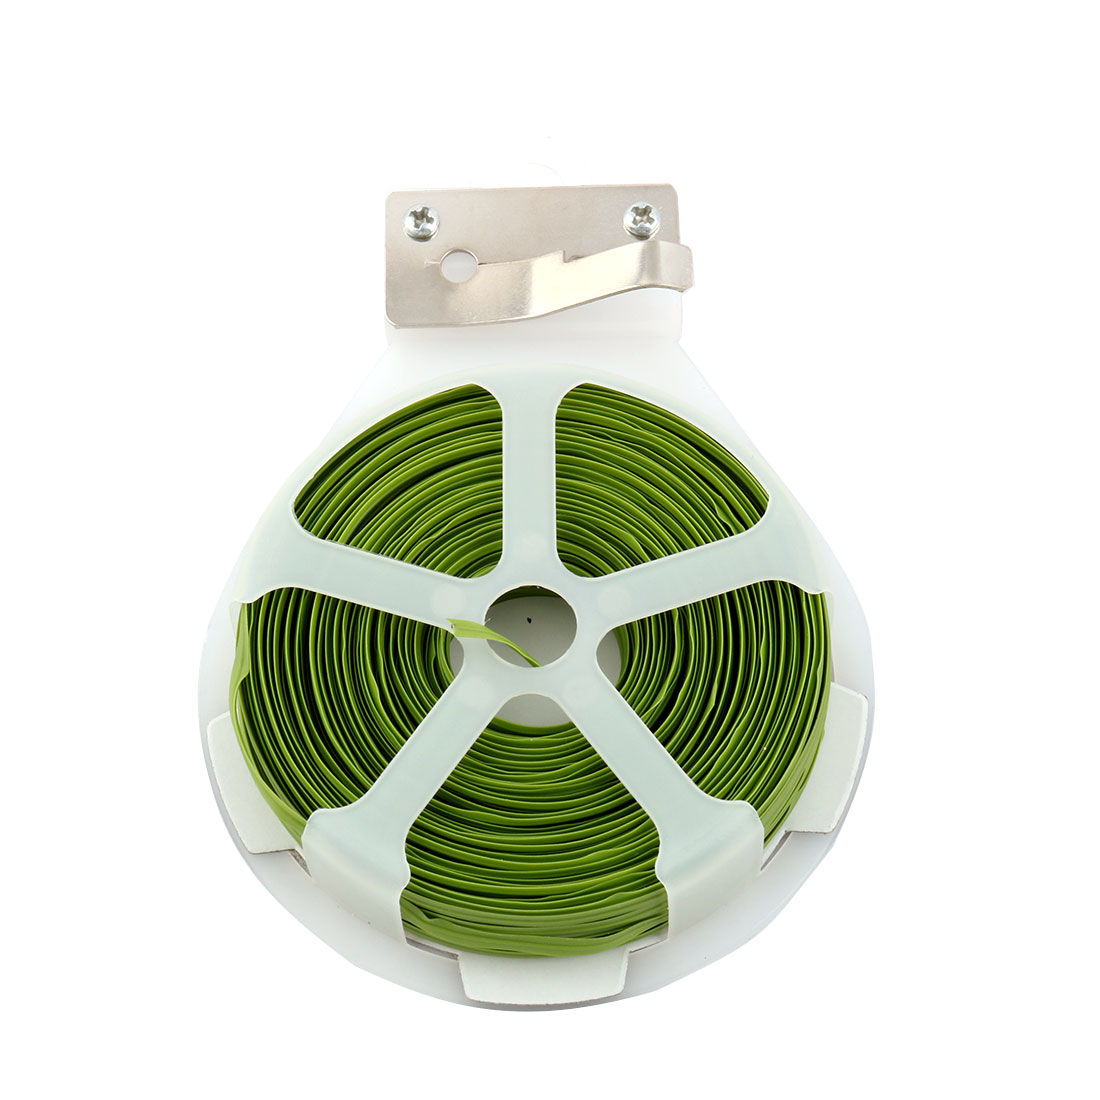 Household Garden Parterre Plastic Gardening Packing Craft Tape Strap Lawn Green